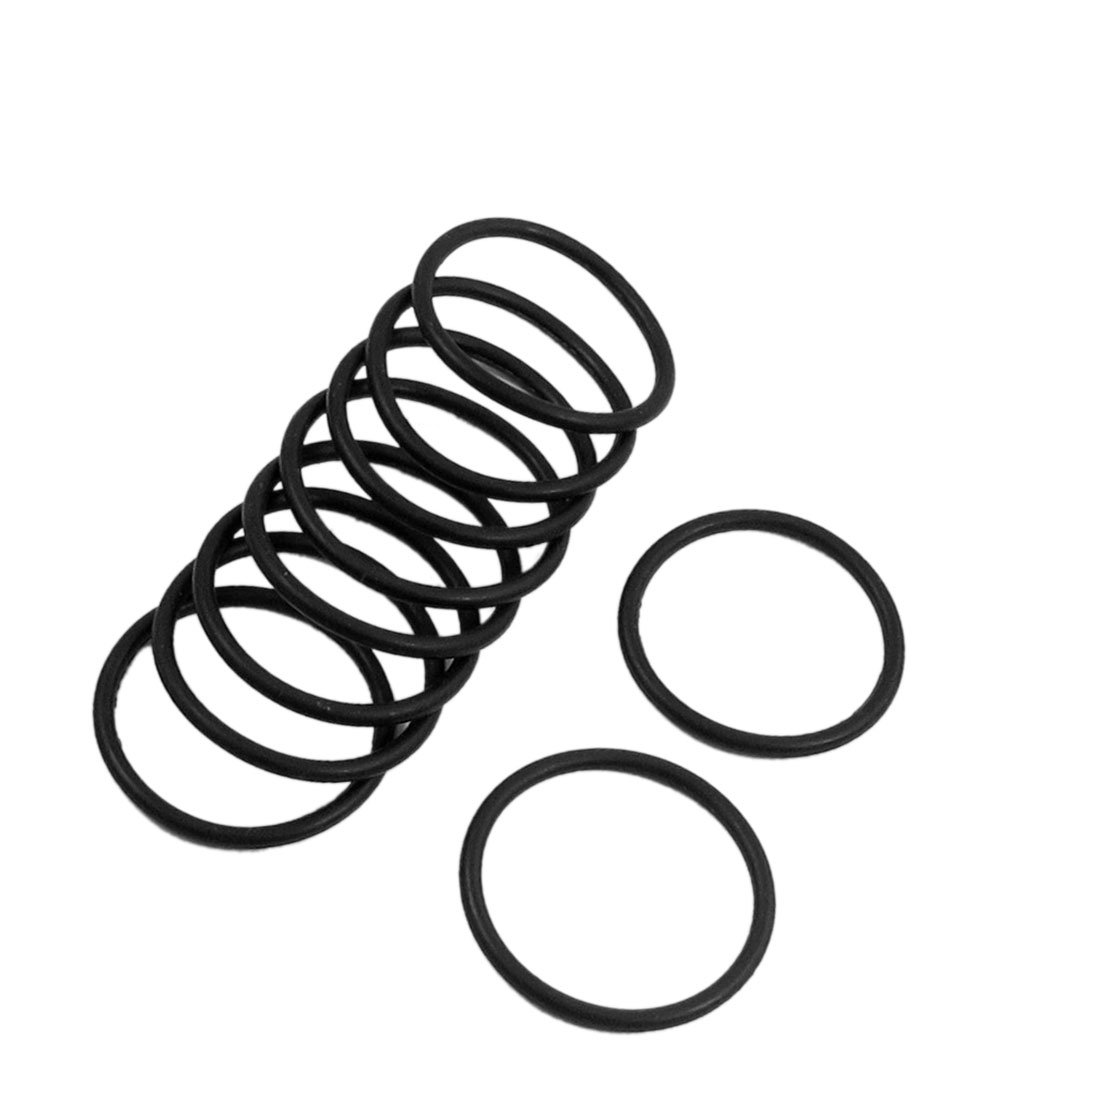 10 Pcs 33mm x 2.4mm Sealing Washers Oil Filter O Rings Black